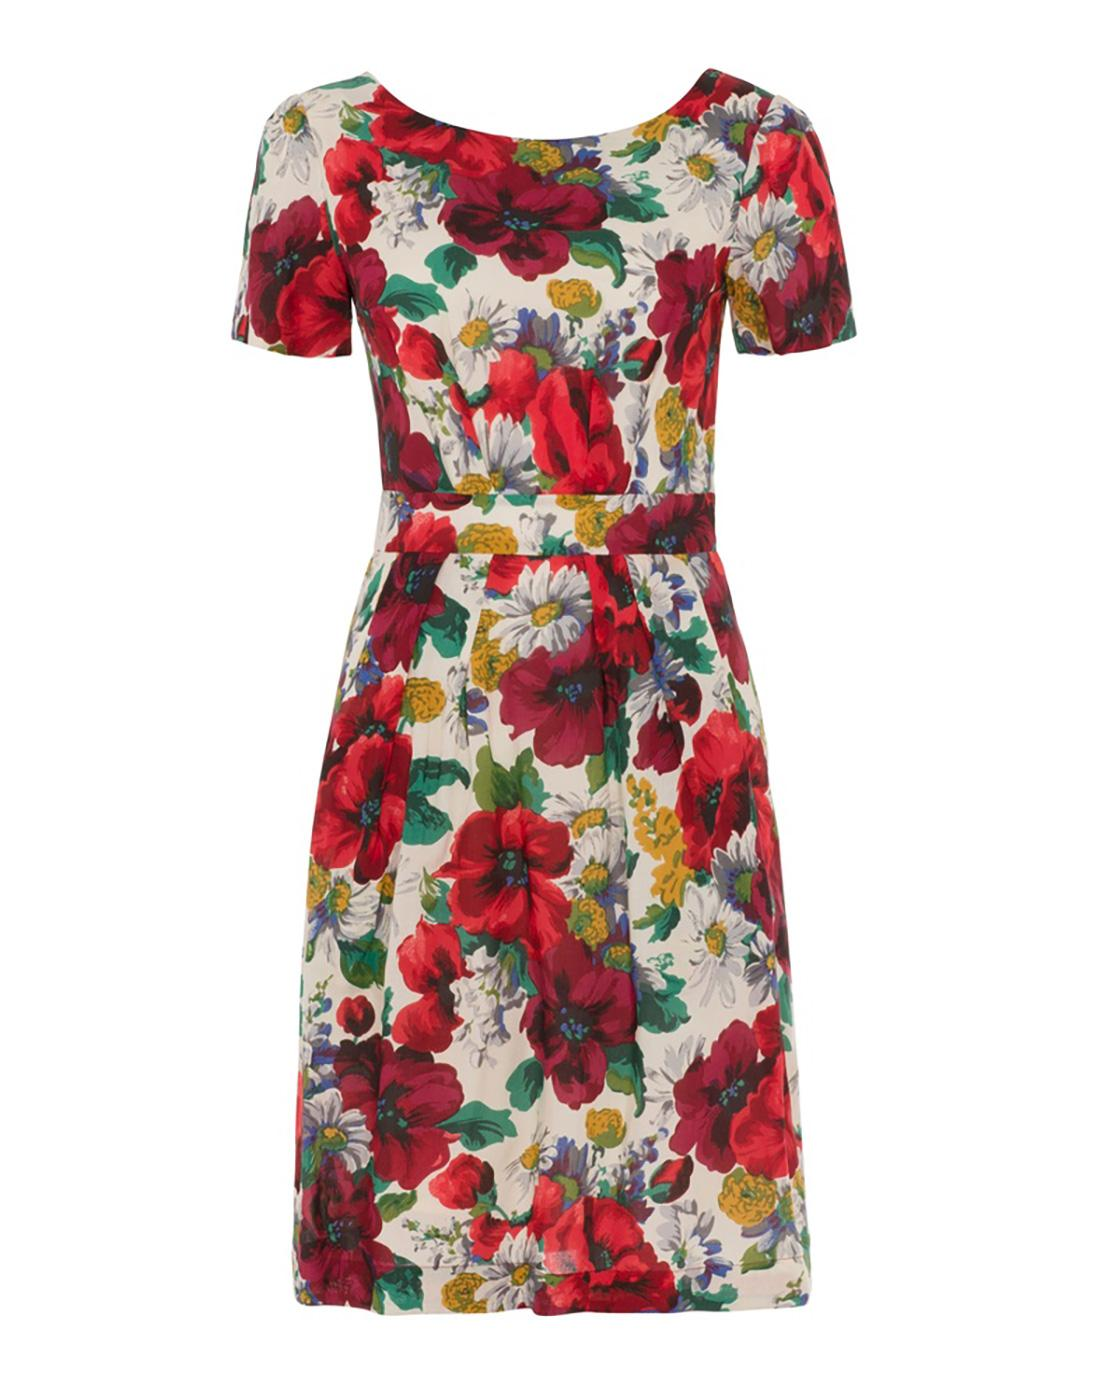 Maggie EMILY AND FIN Retro 50s Poppy Print Dress